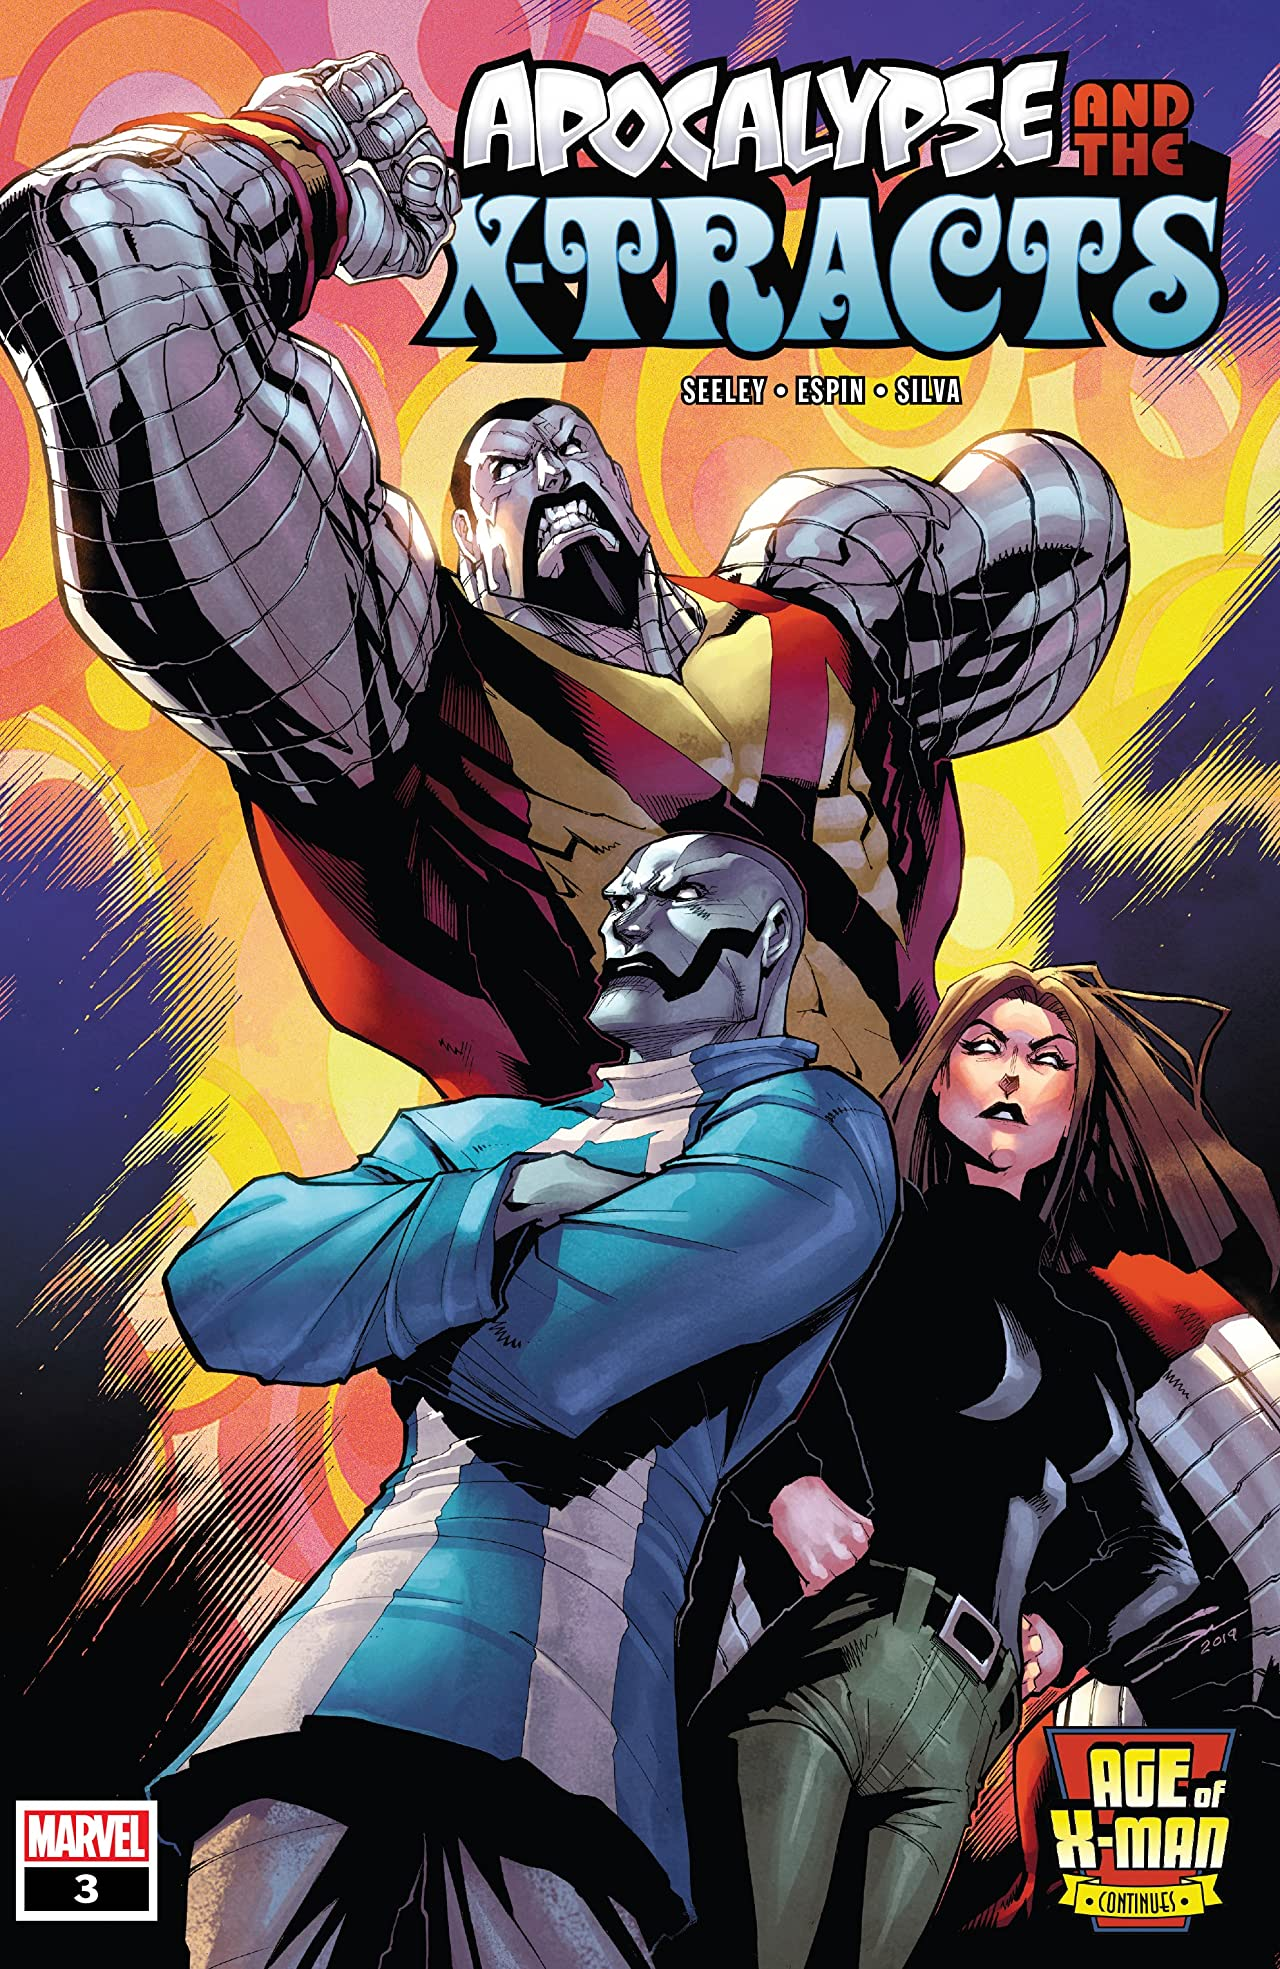 Age Of X-Man: Apocalypse & The X-Tracts (2019) #3 (of 5)